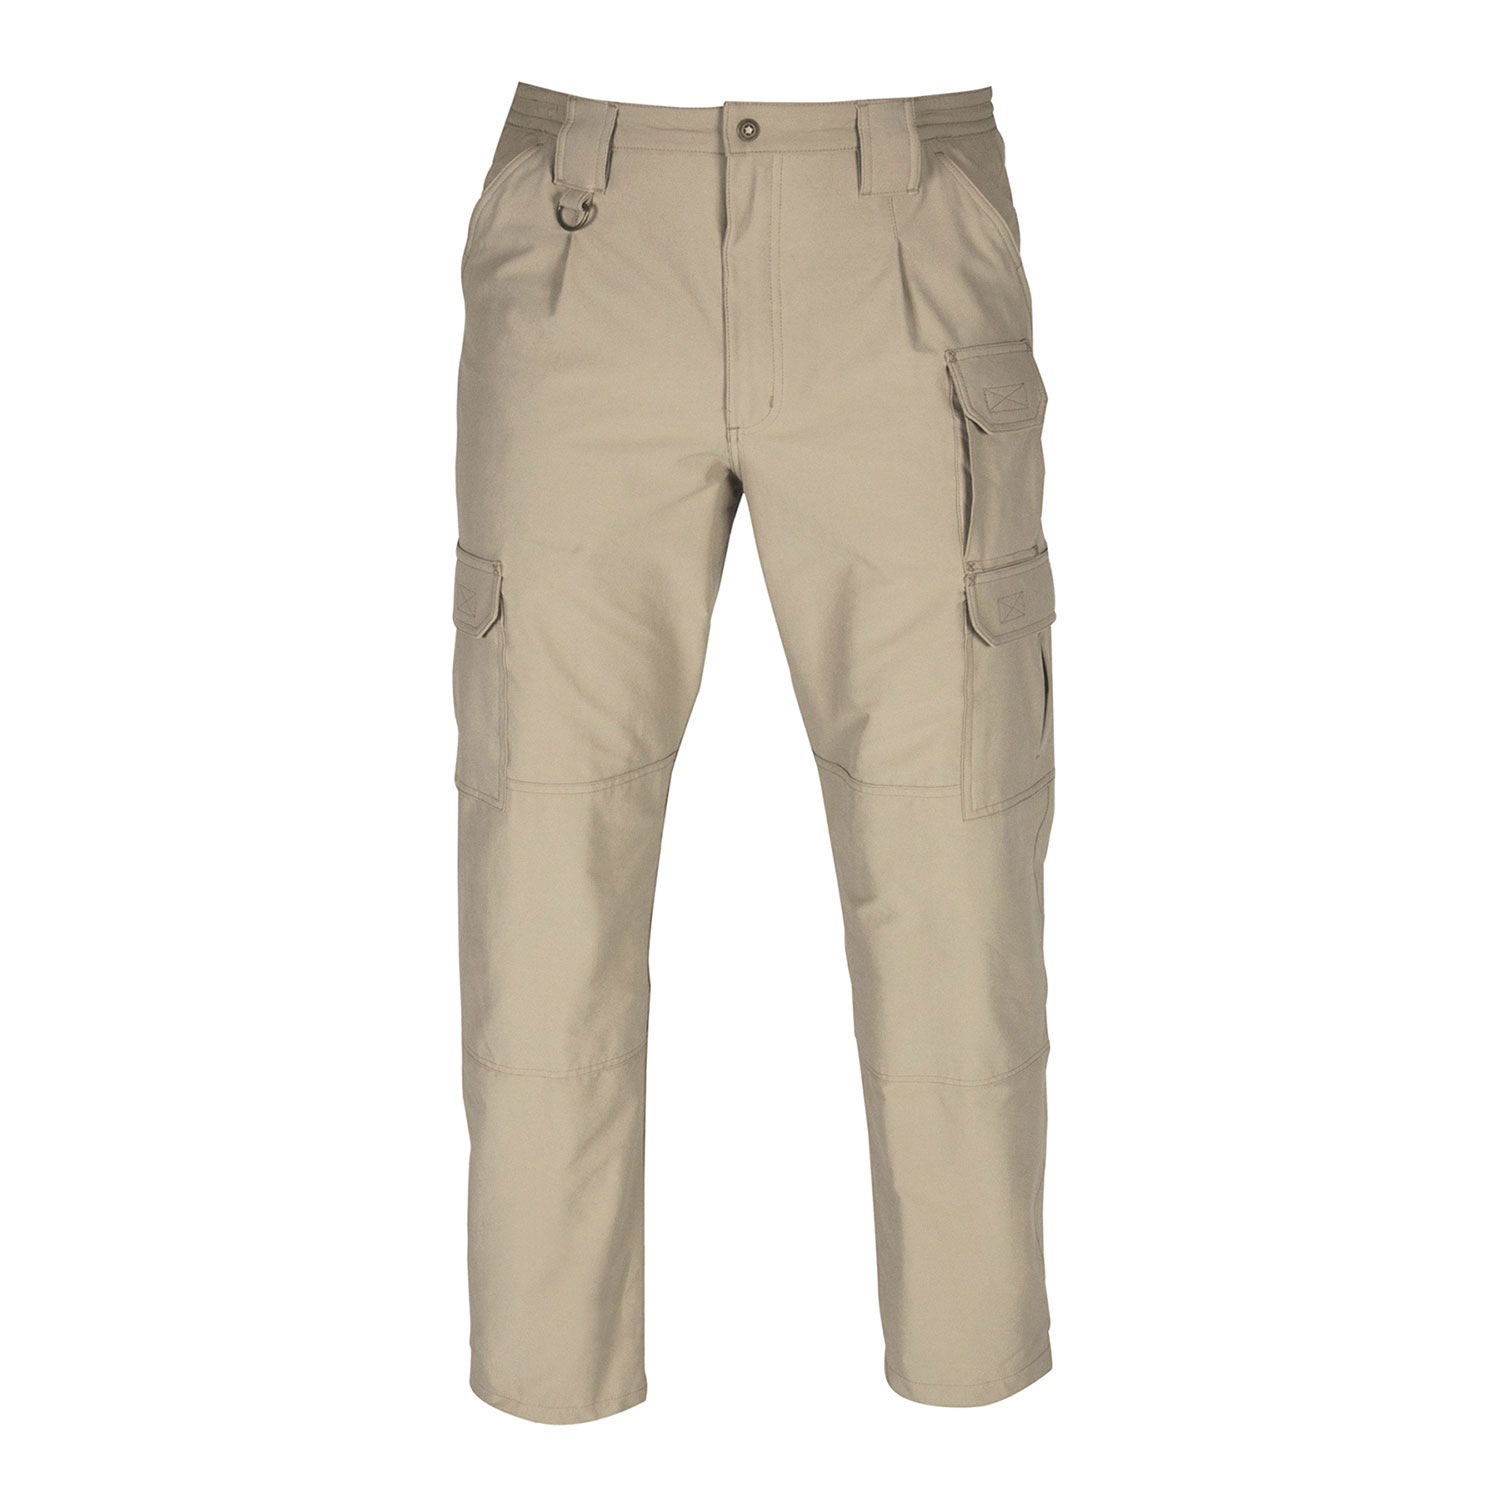 Propper Women's Stretch Tactical Pant